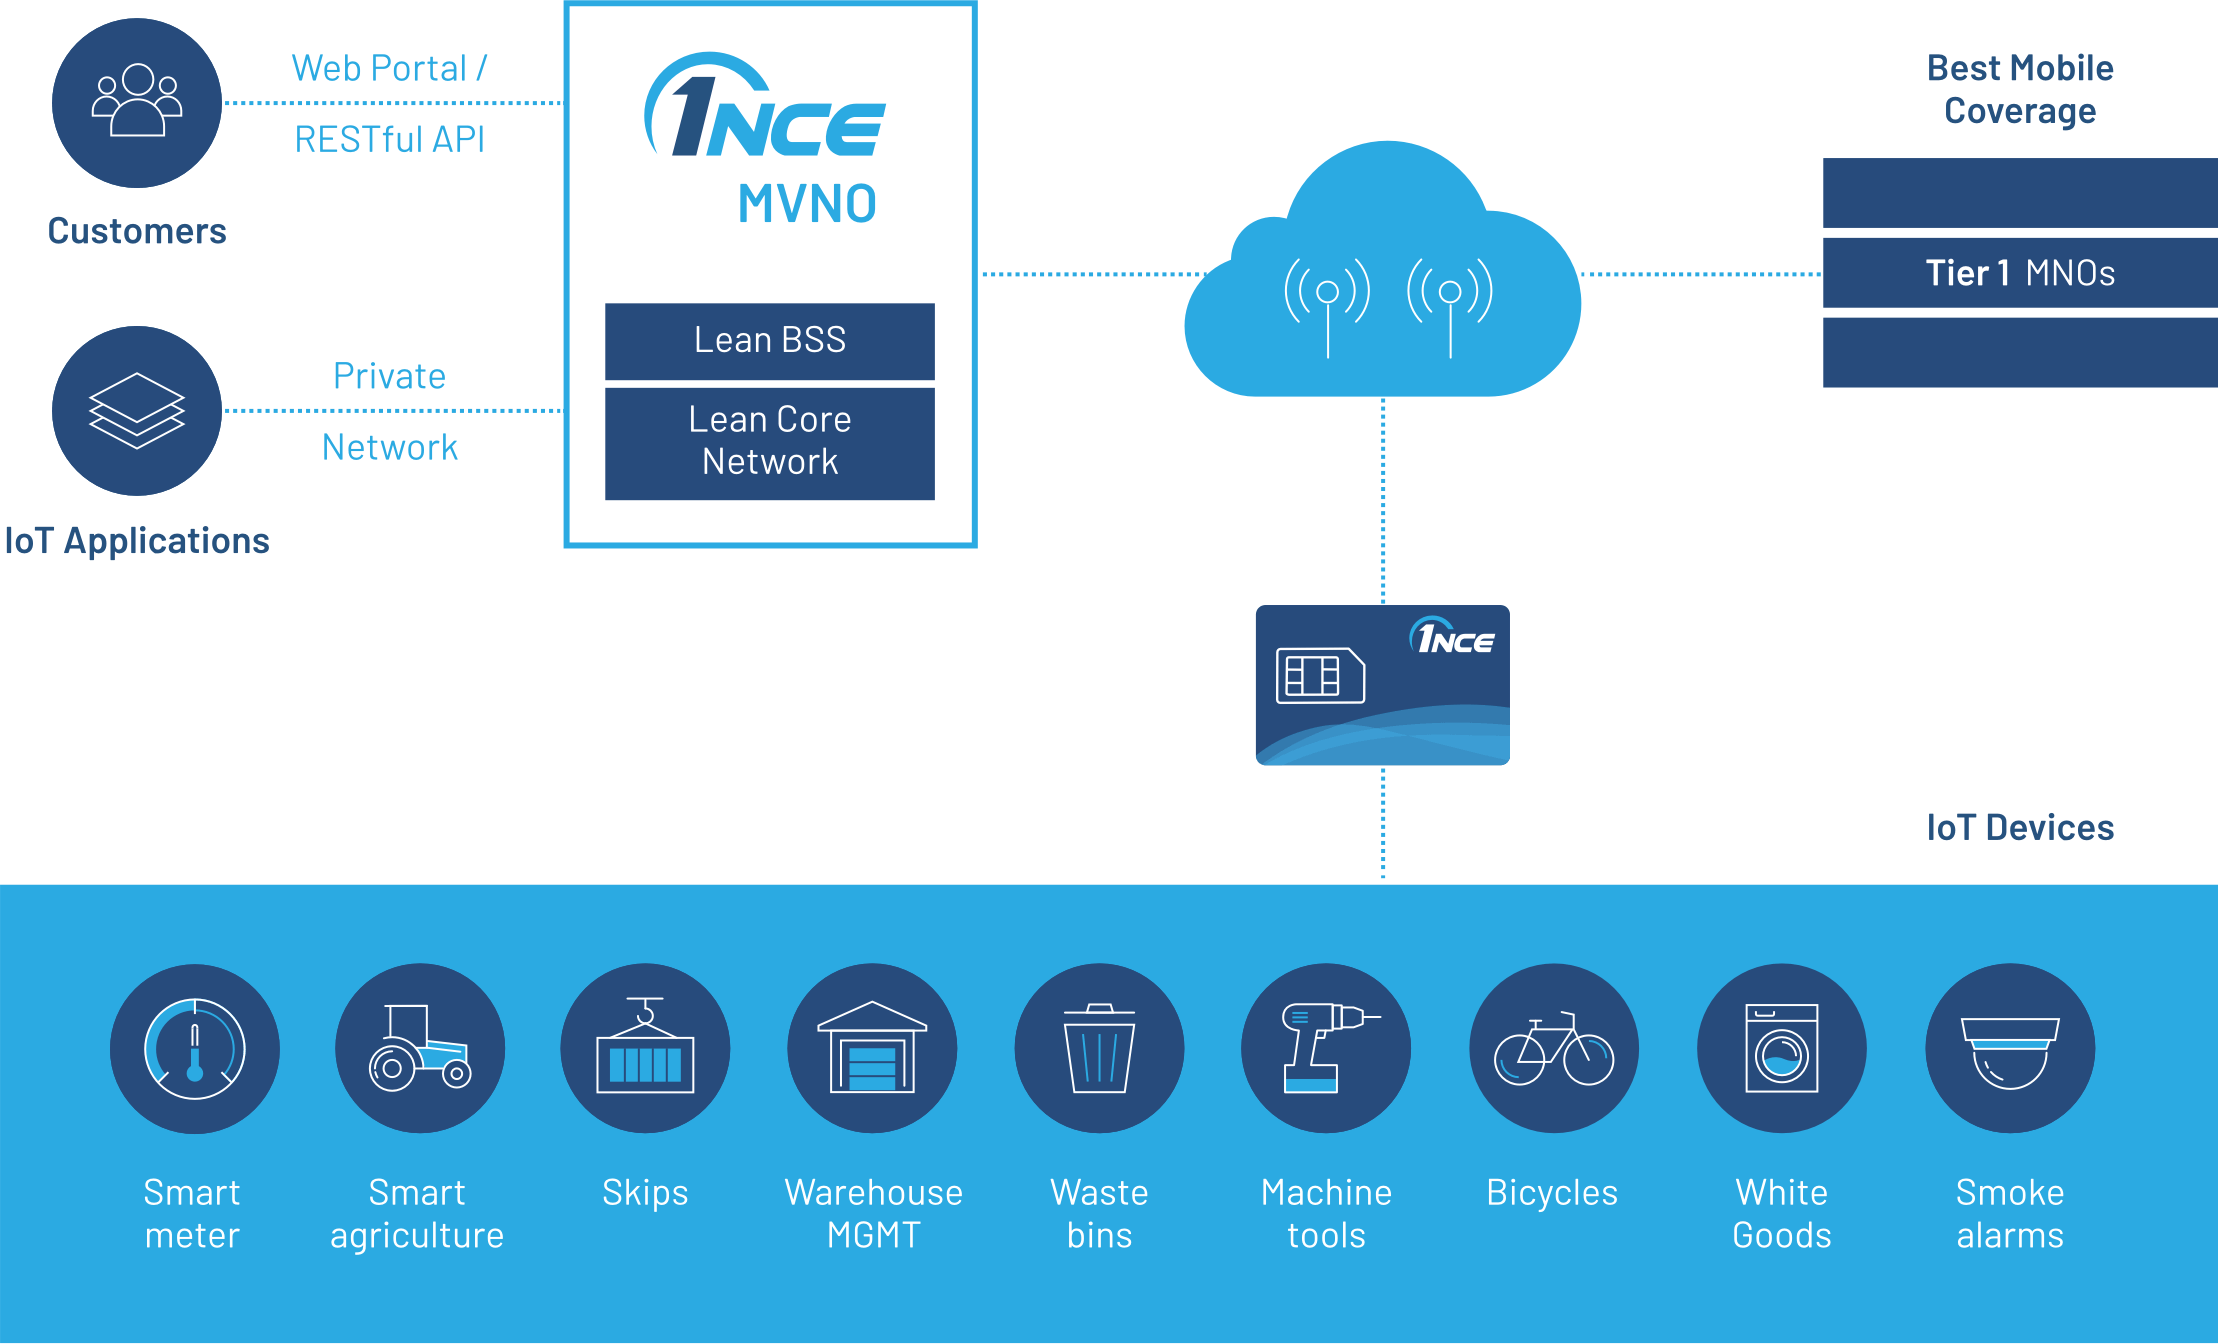 1NCE Network explained